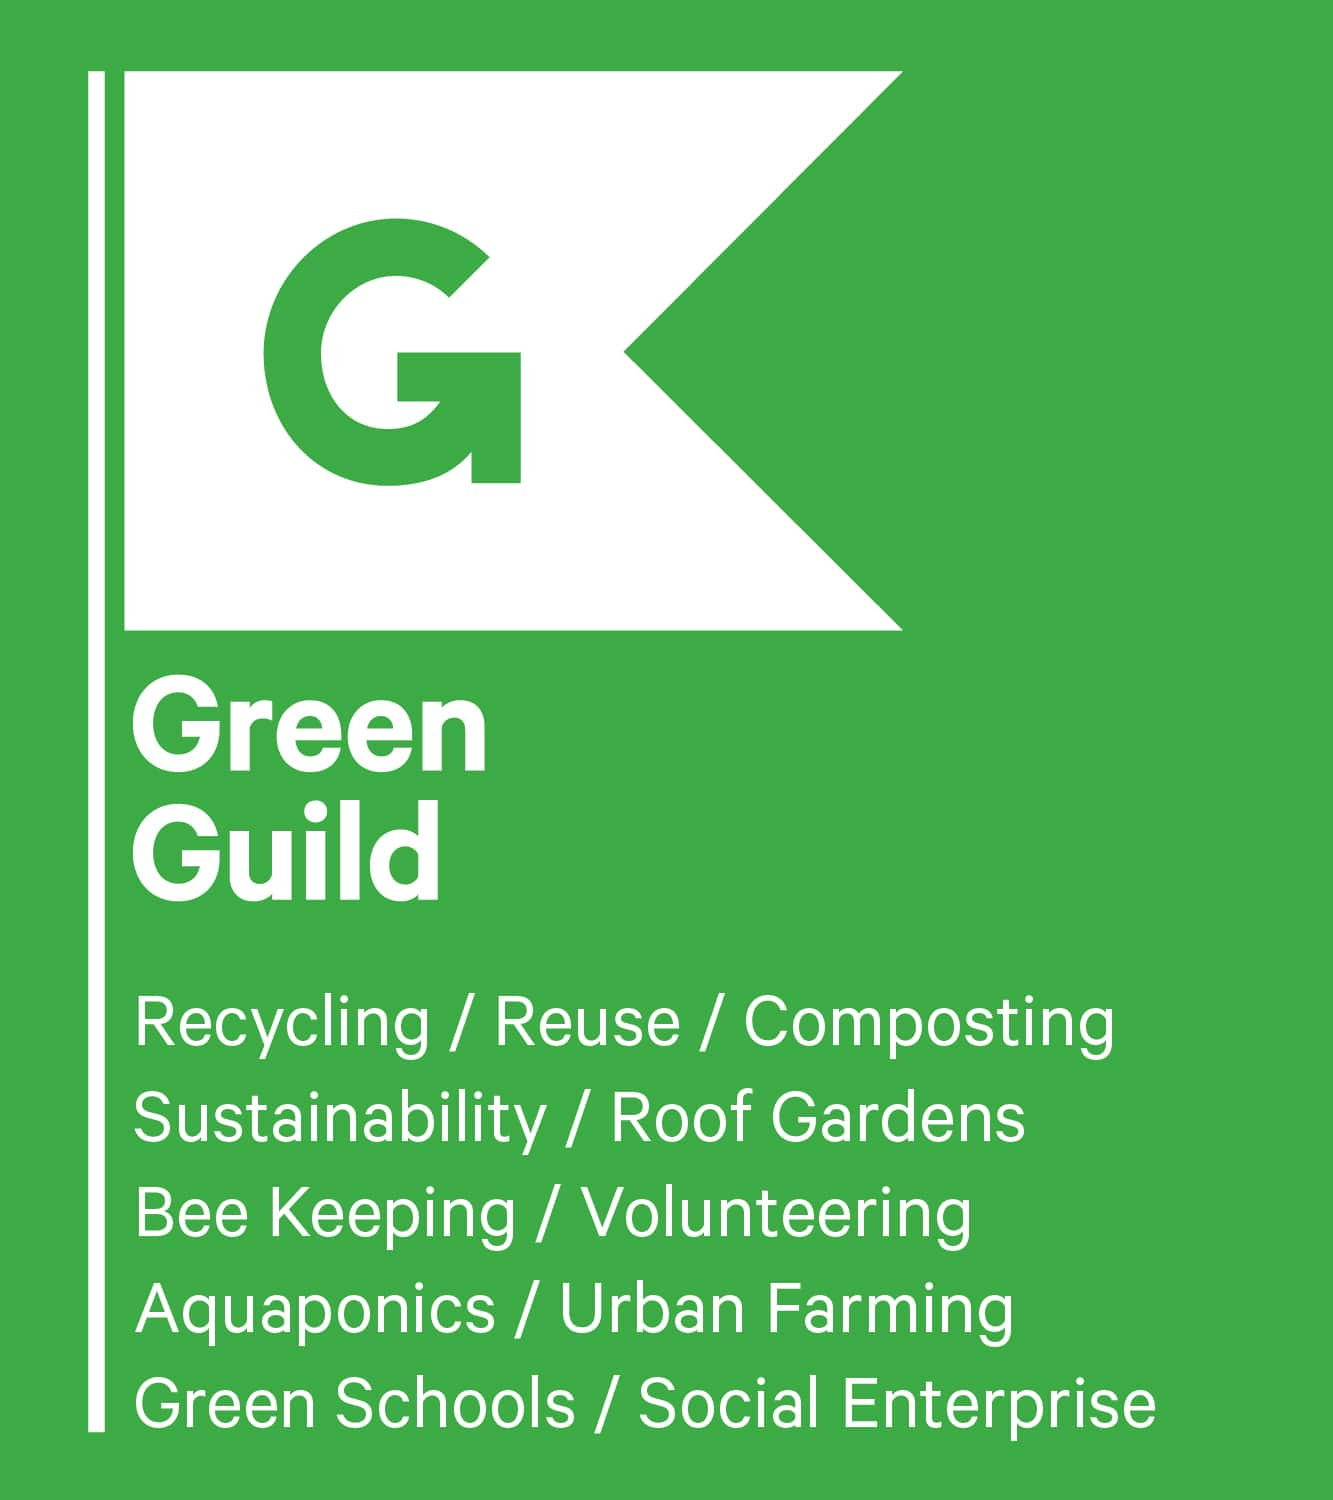 Green Guild, University of Liverpool Students Union